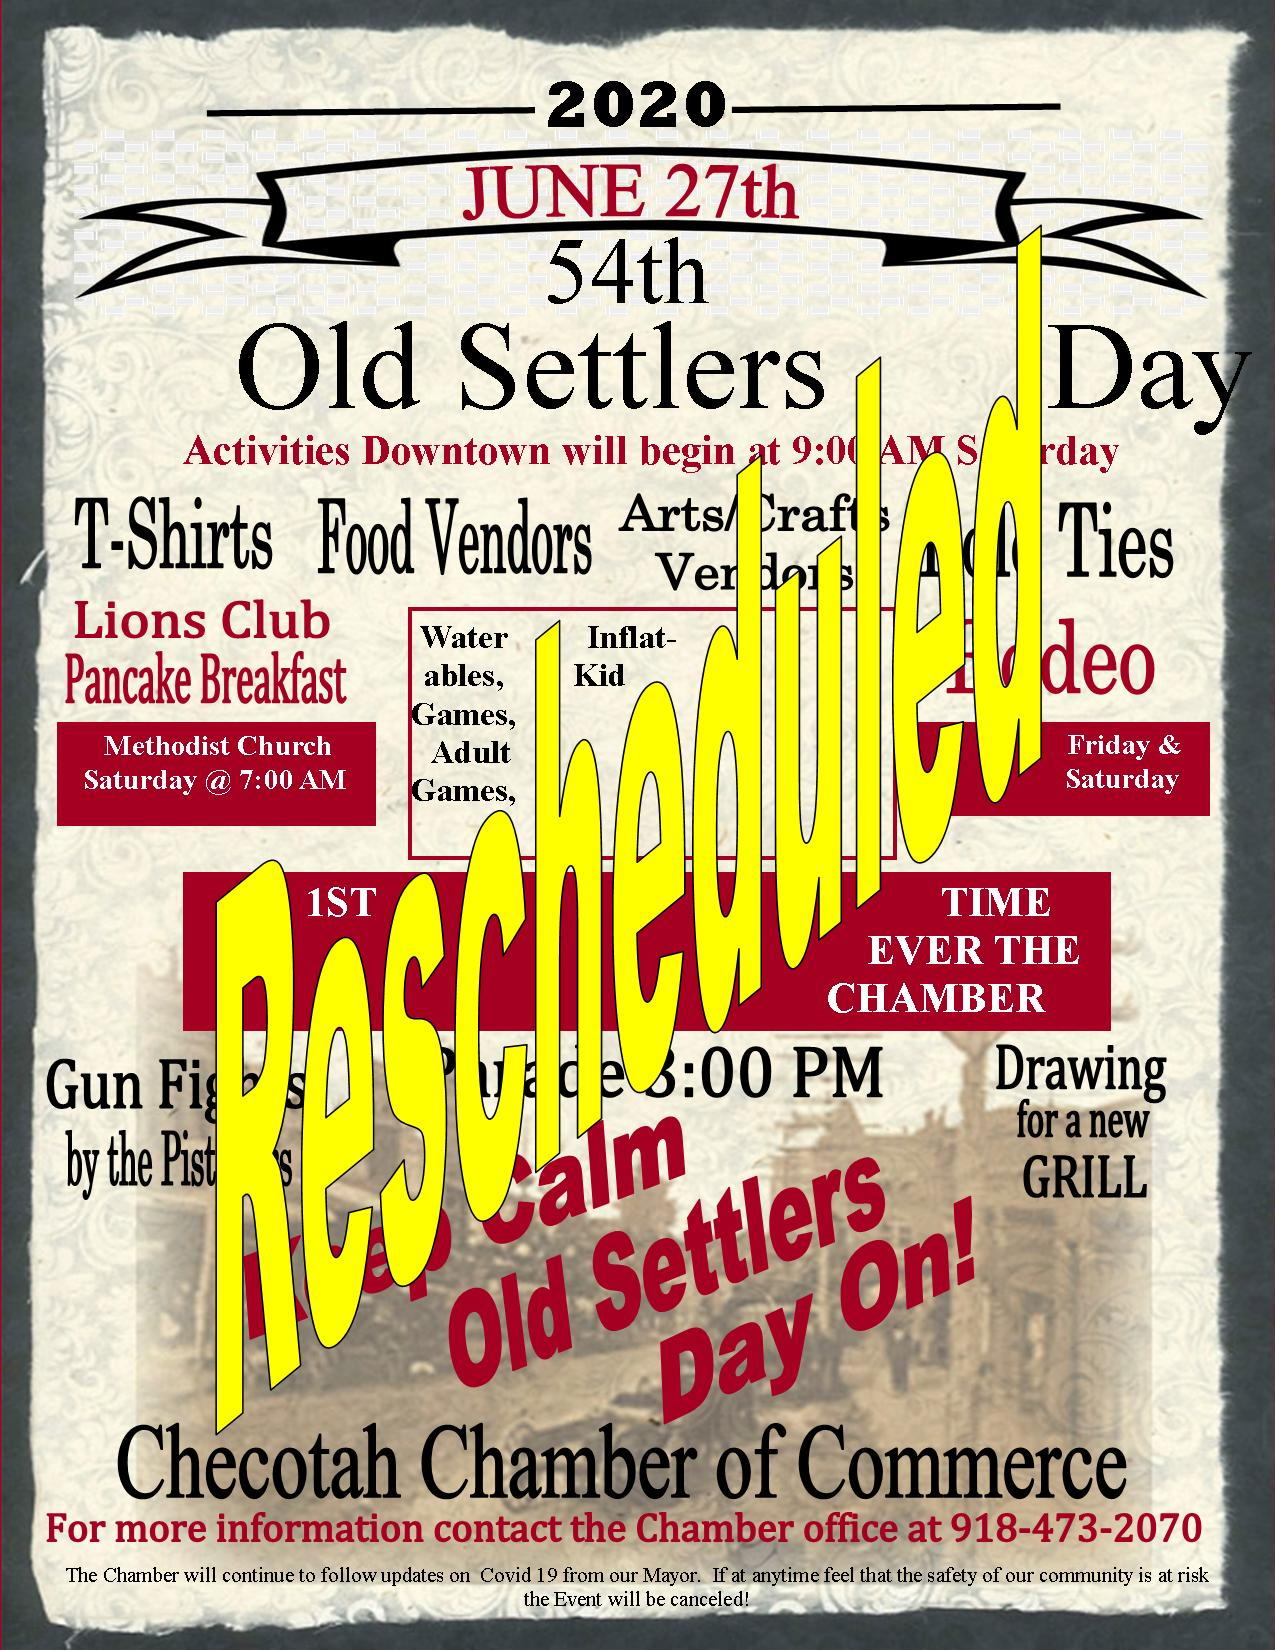 OLD-SETTLERS-DAY-2020-FINAL-2ND-FLYER.jpg